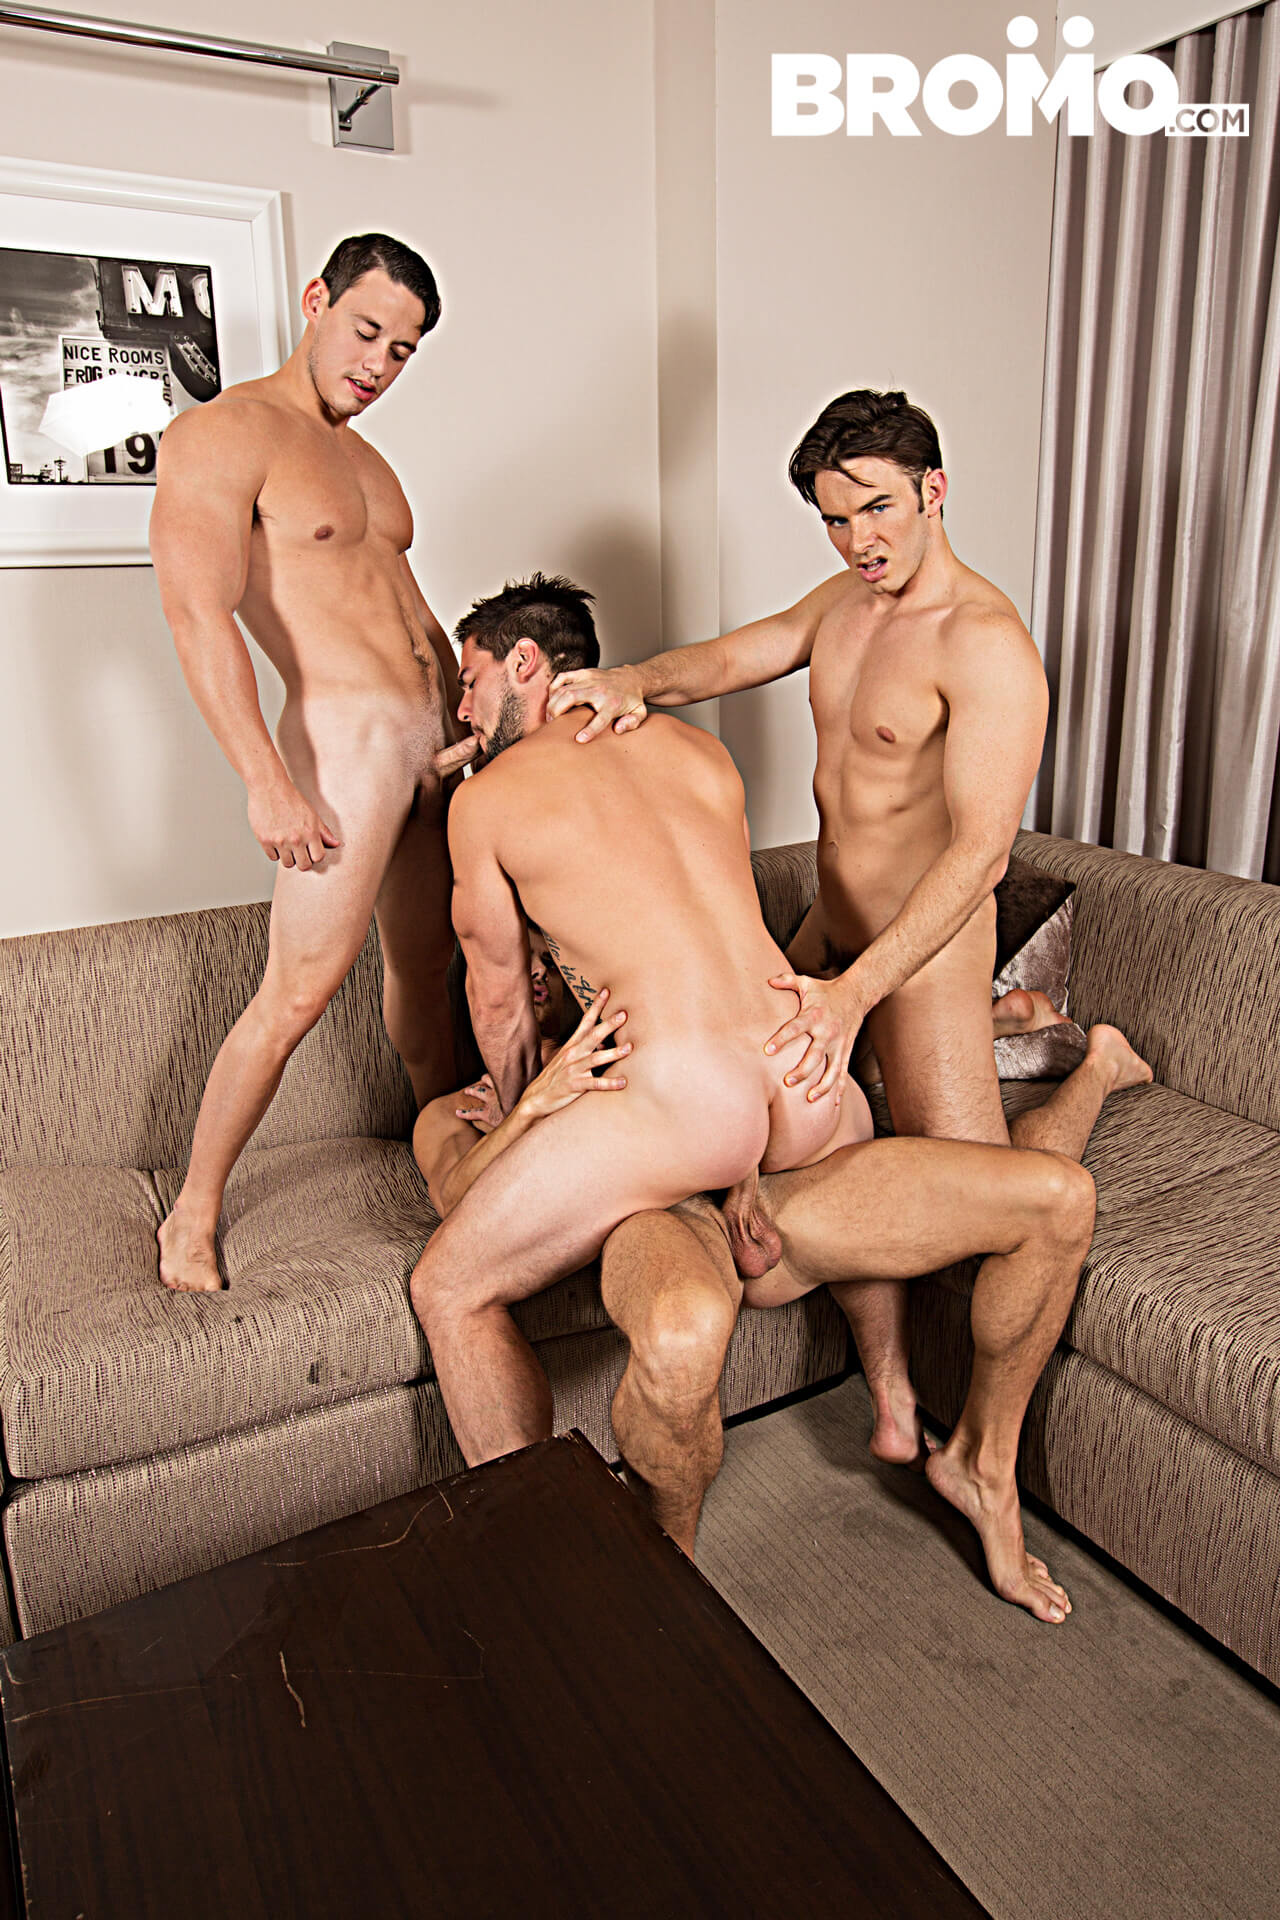 bromo str8 bitch part 4 aspen addison graham evan marco tobias gay porn blog image 24